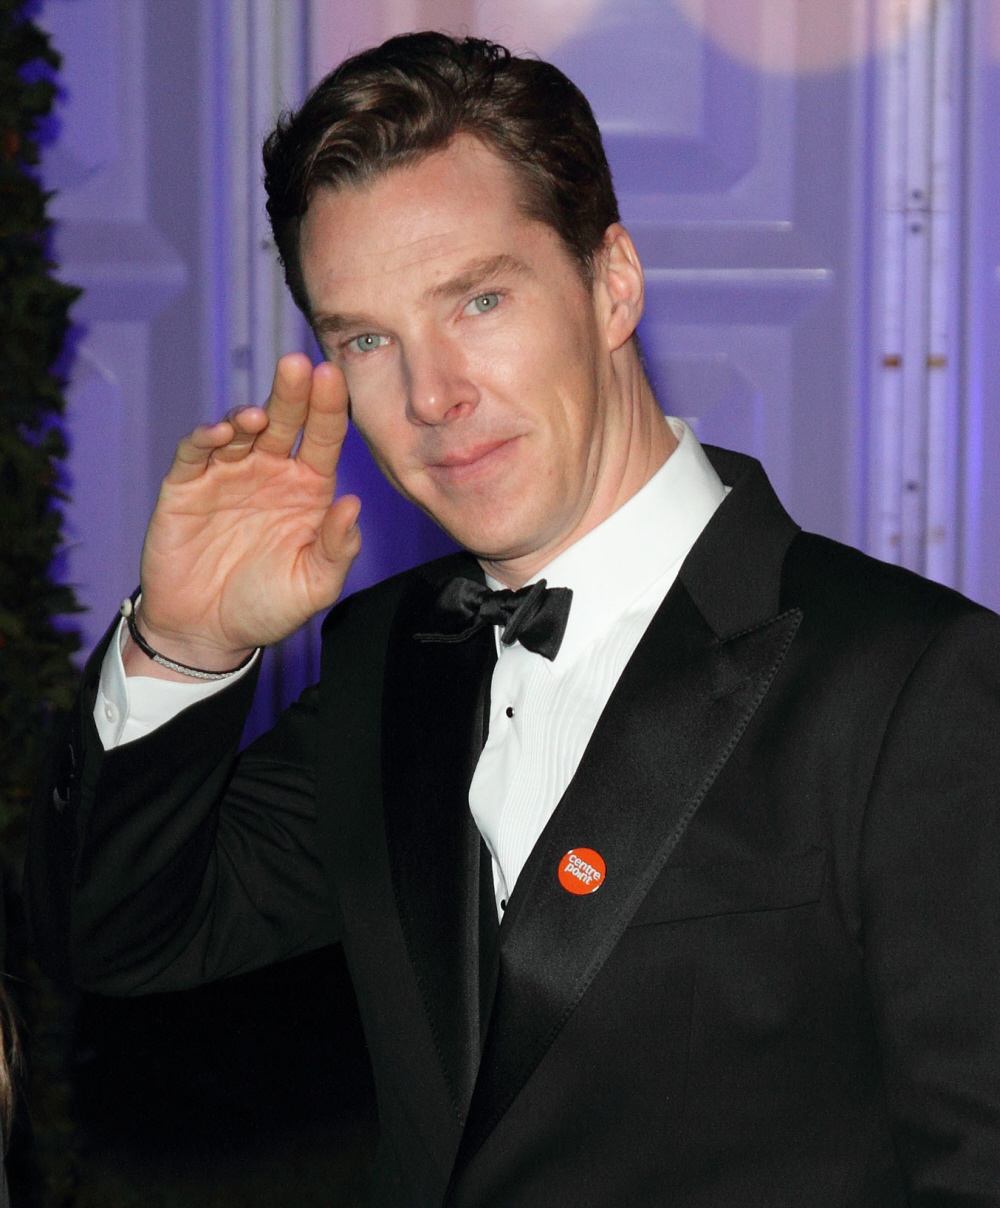 Benedict Cumberbatch has an 'incomplete' simian line in his right hand.